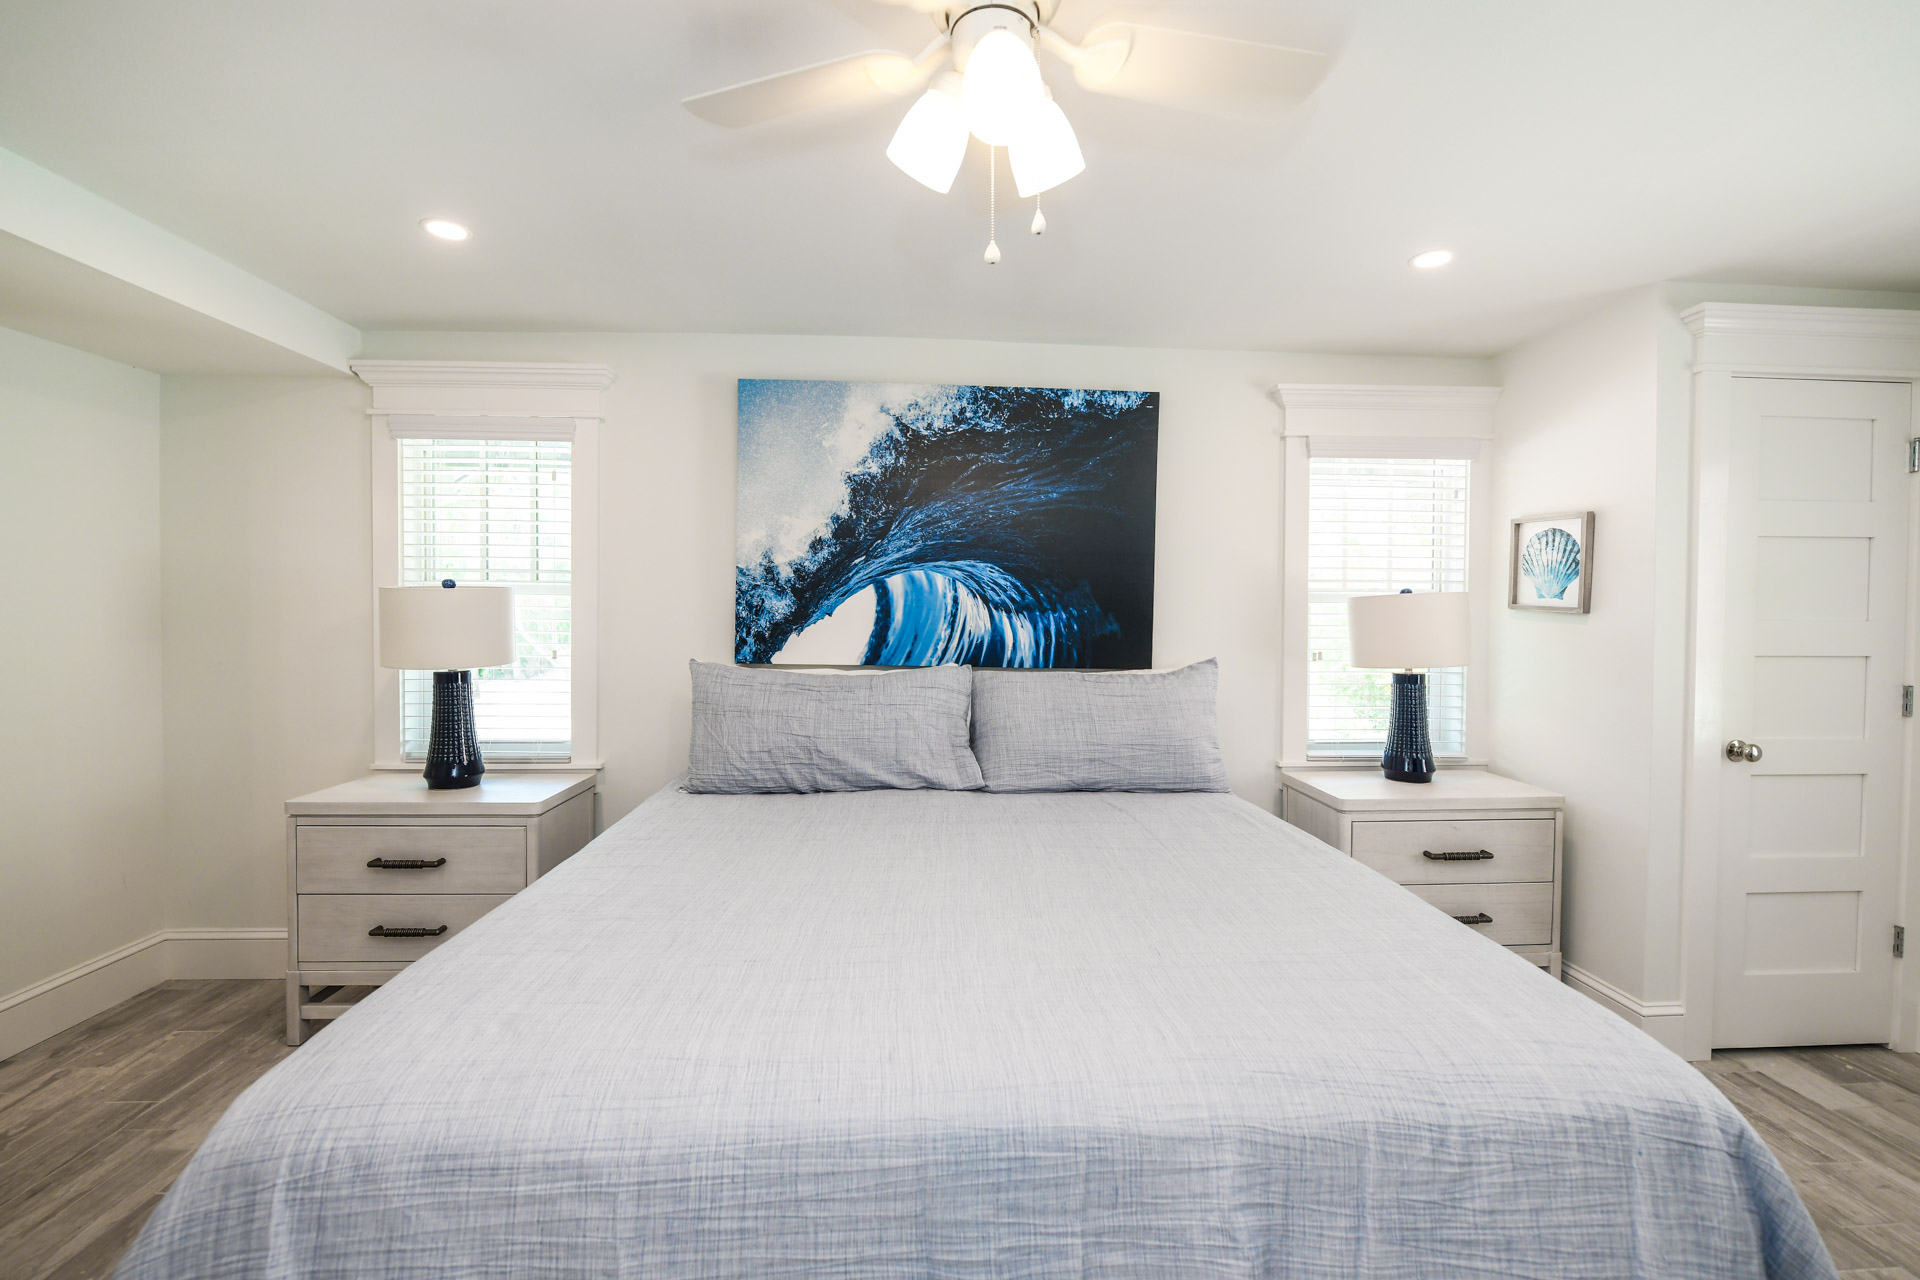 Bedroom 3 - Large Comfortable King Bed and Ocean Decor